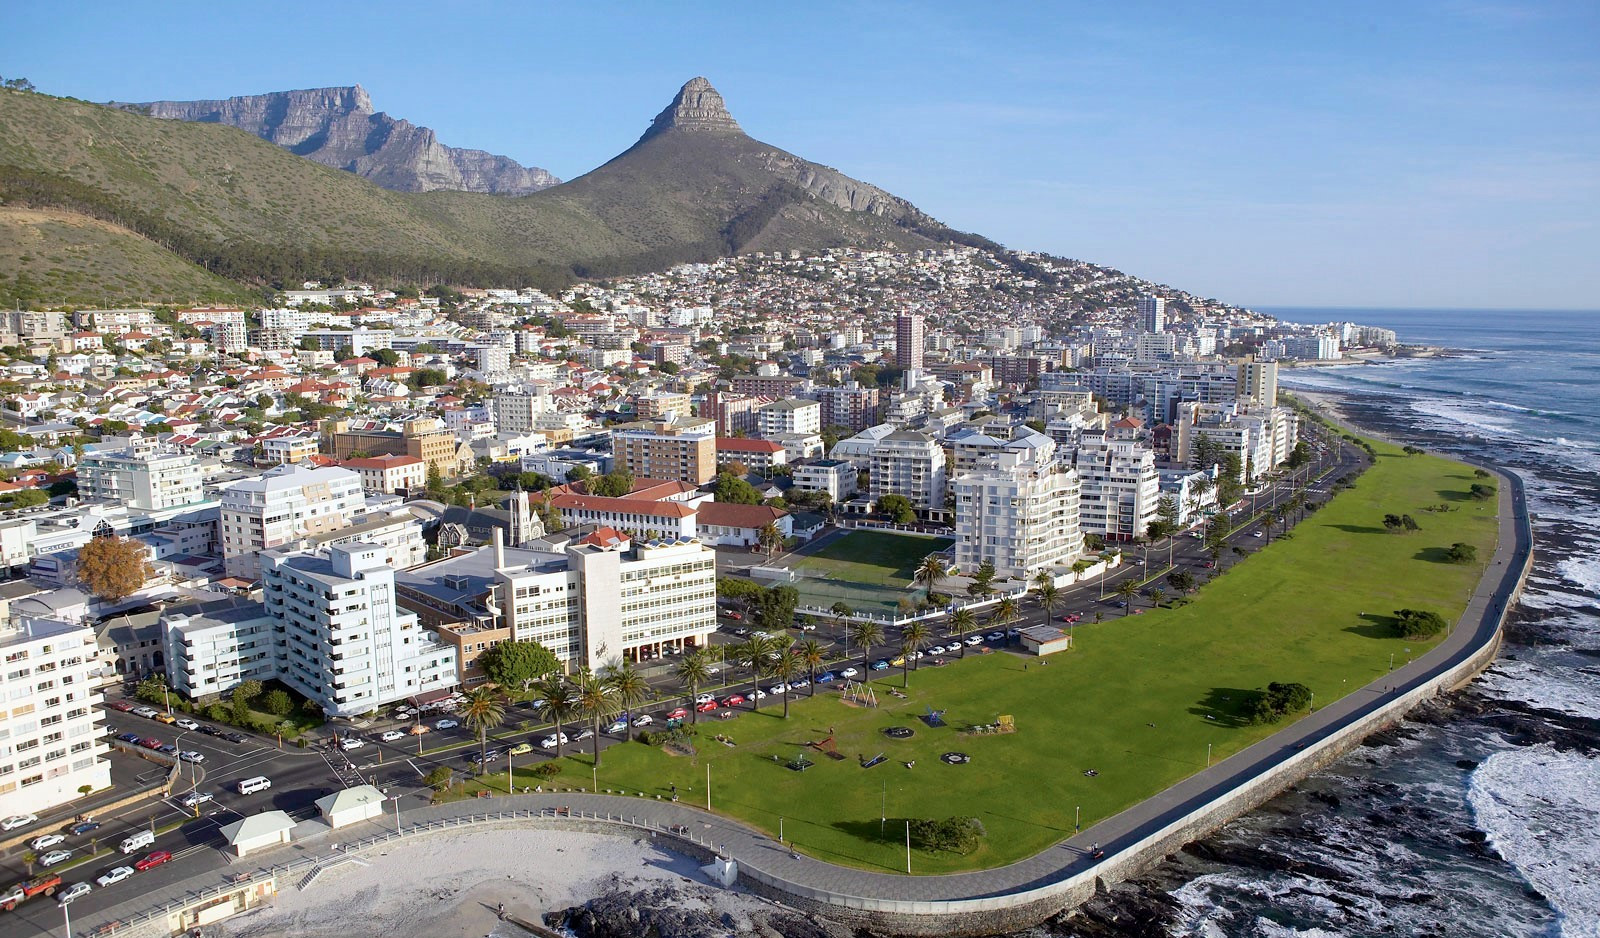 CAPE TOWN AND SOUTH AFRICA